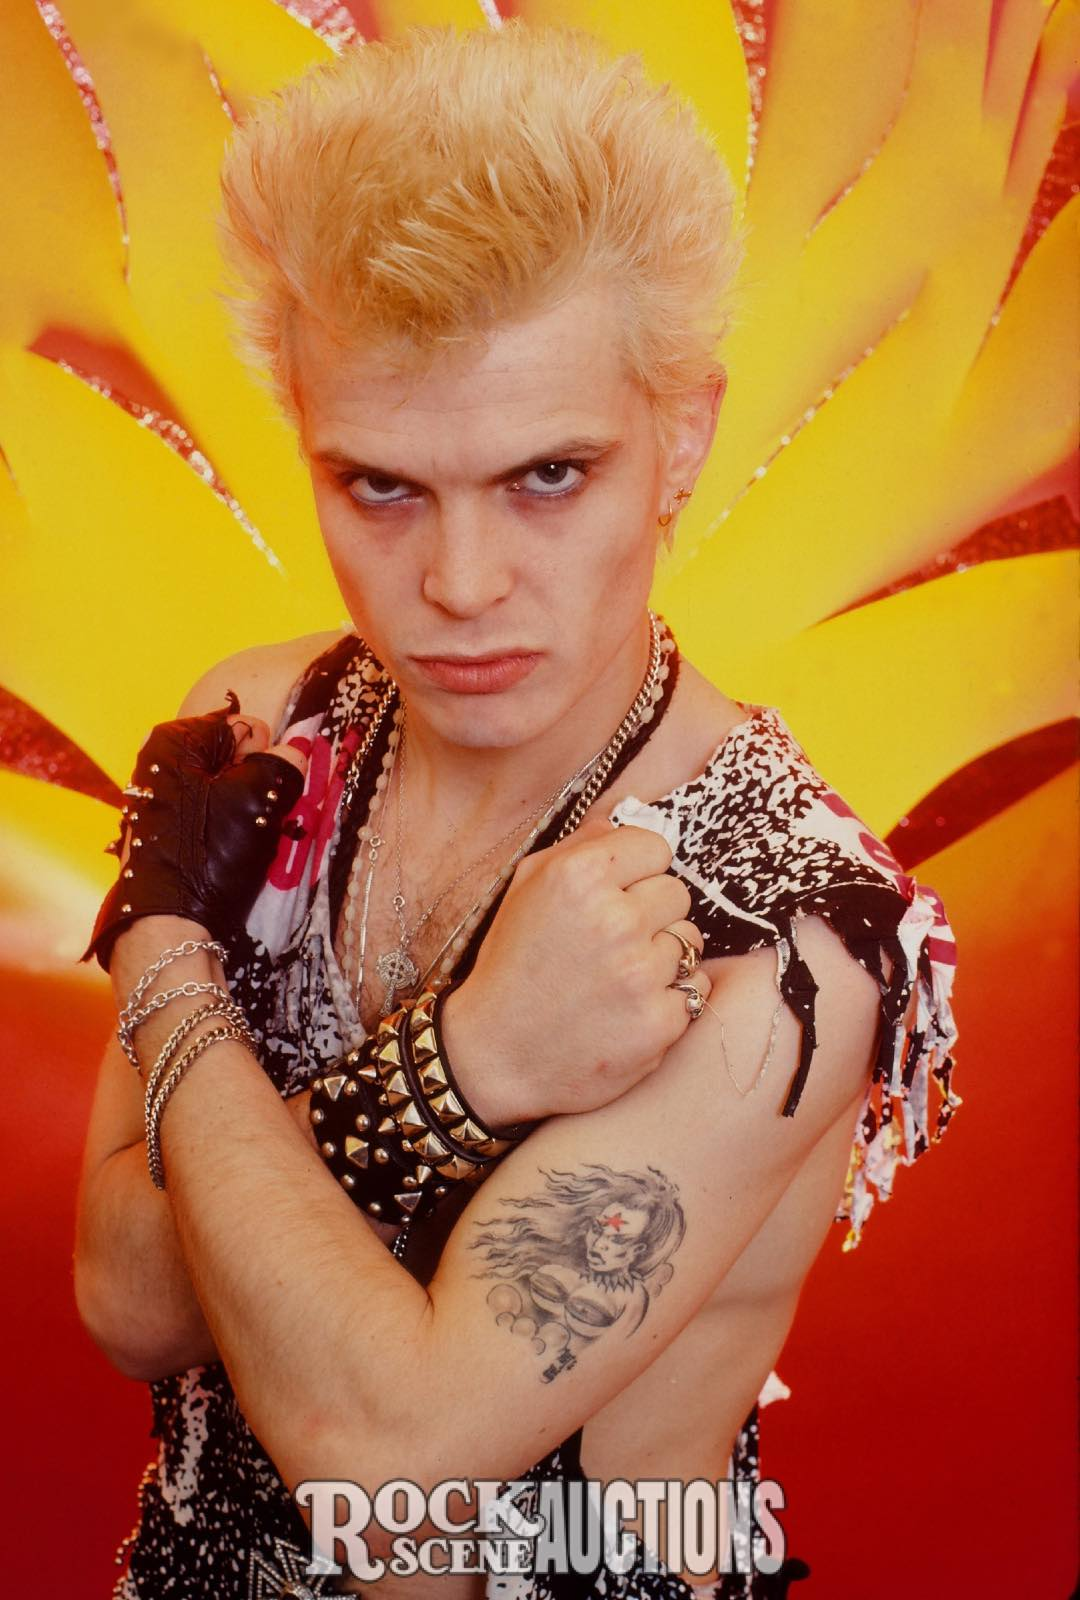 Billy Idol 1984   Rock Scene Auctions Billy Idol 1984